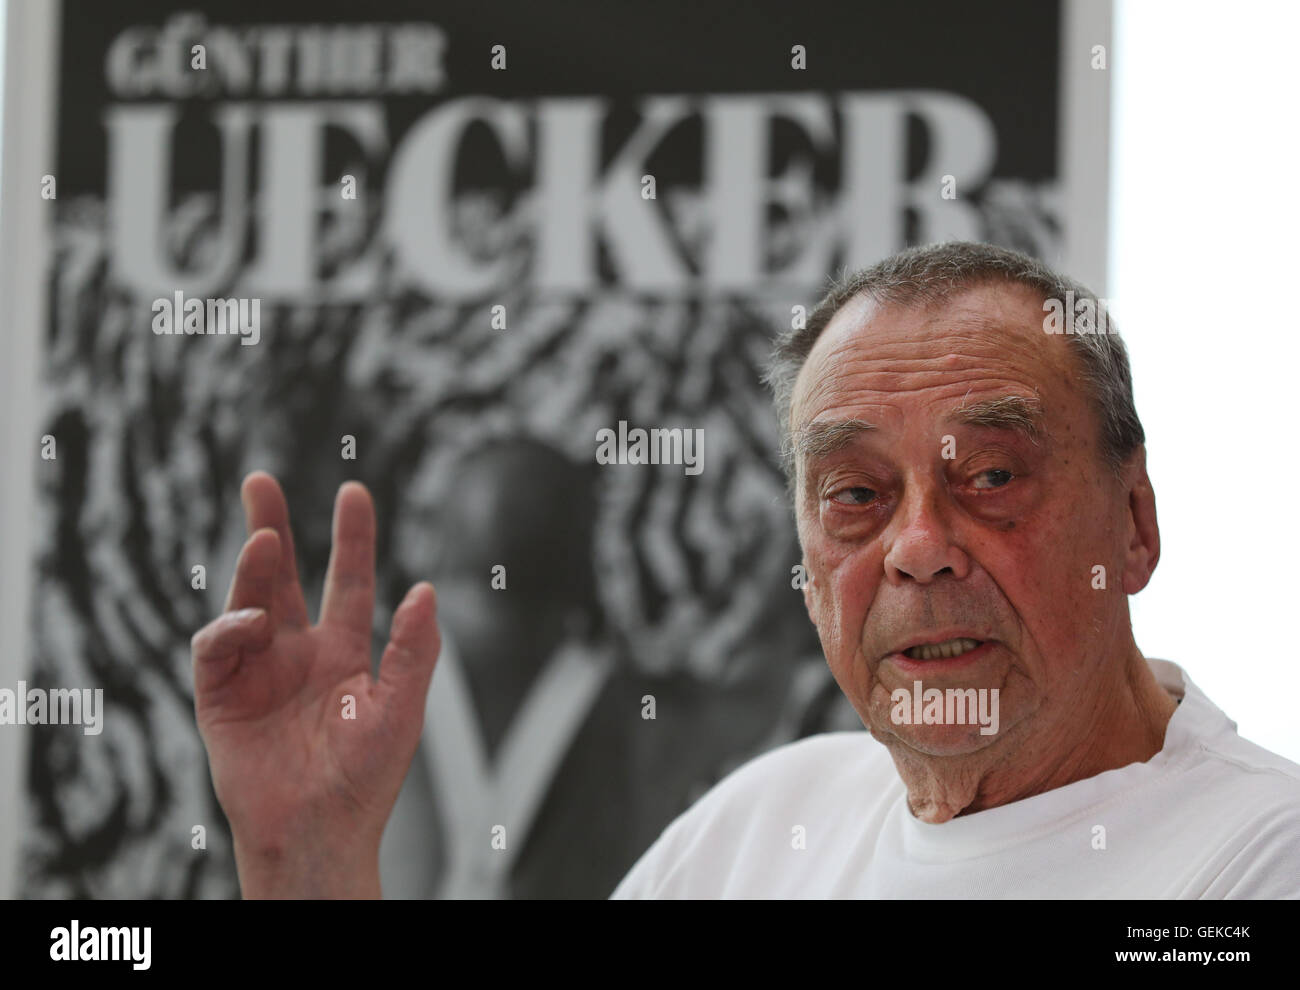 Artist Guenther Uecker during a preliminary inspection at the exhibition 'The Oppressed Human Being' (German: - Stock Image